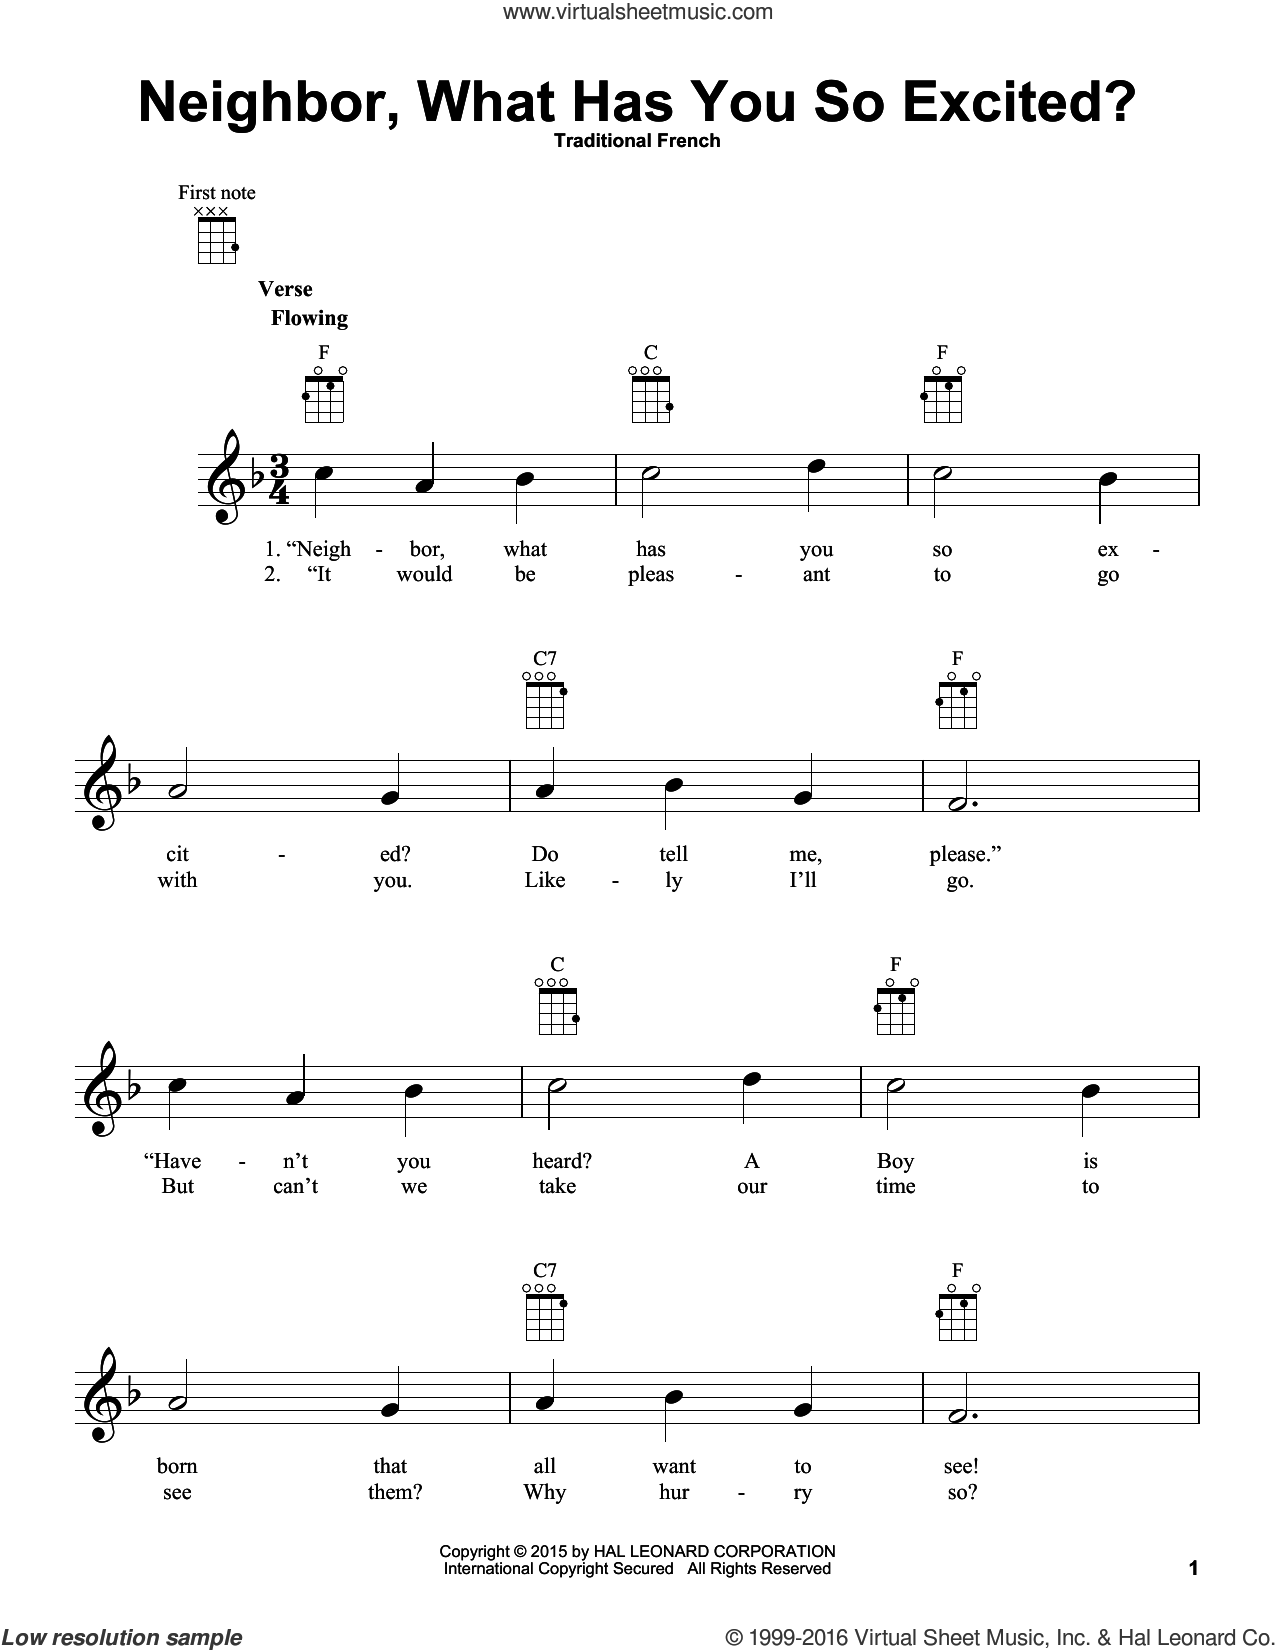 Neighbor, What Has You So Excited? sheet music for ukulele. Score Image Preview.